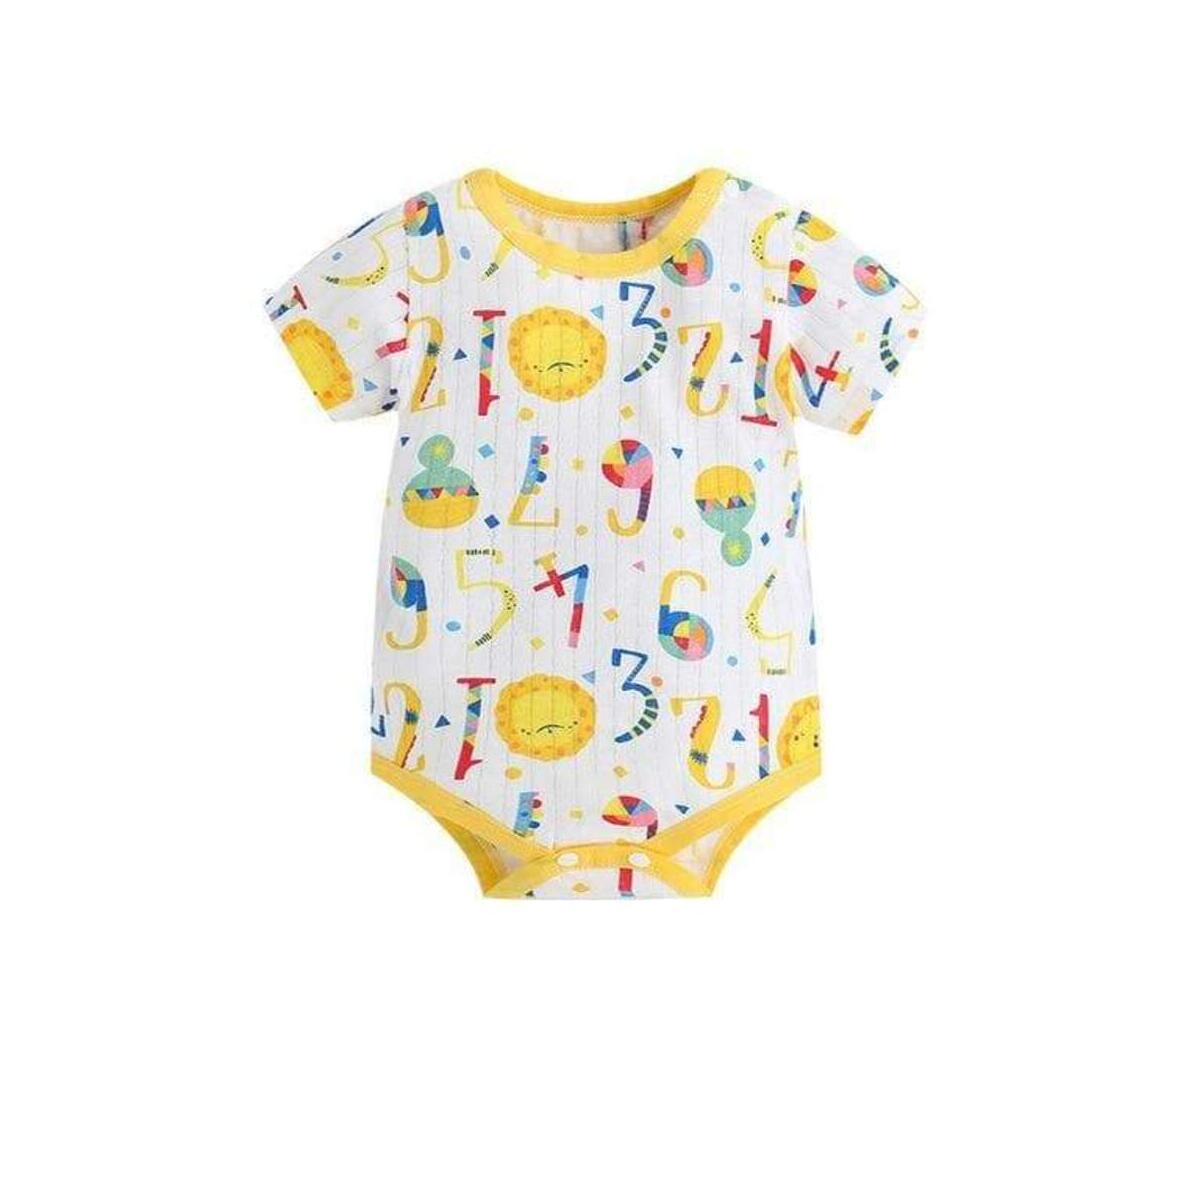 Infant Baby Unisex Onesie Summer Casual Style Short Sleeve Romper Cotton Jumpsuit